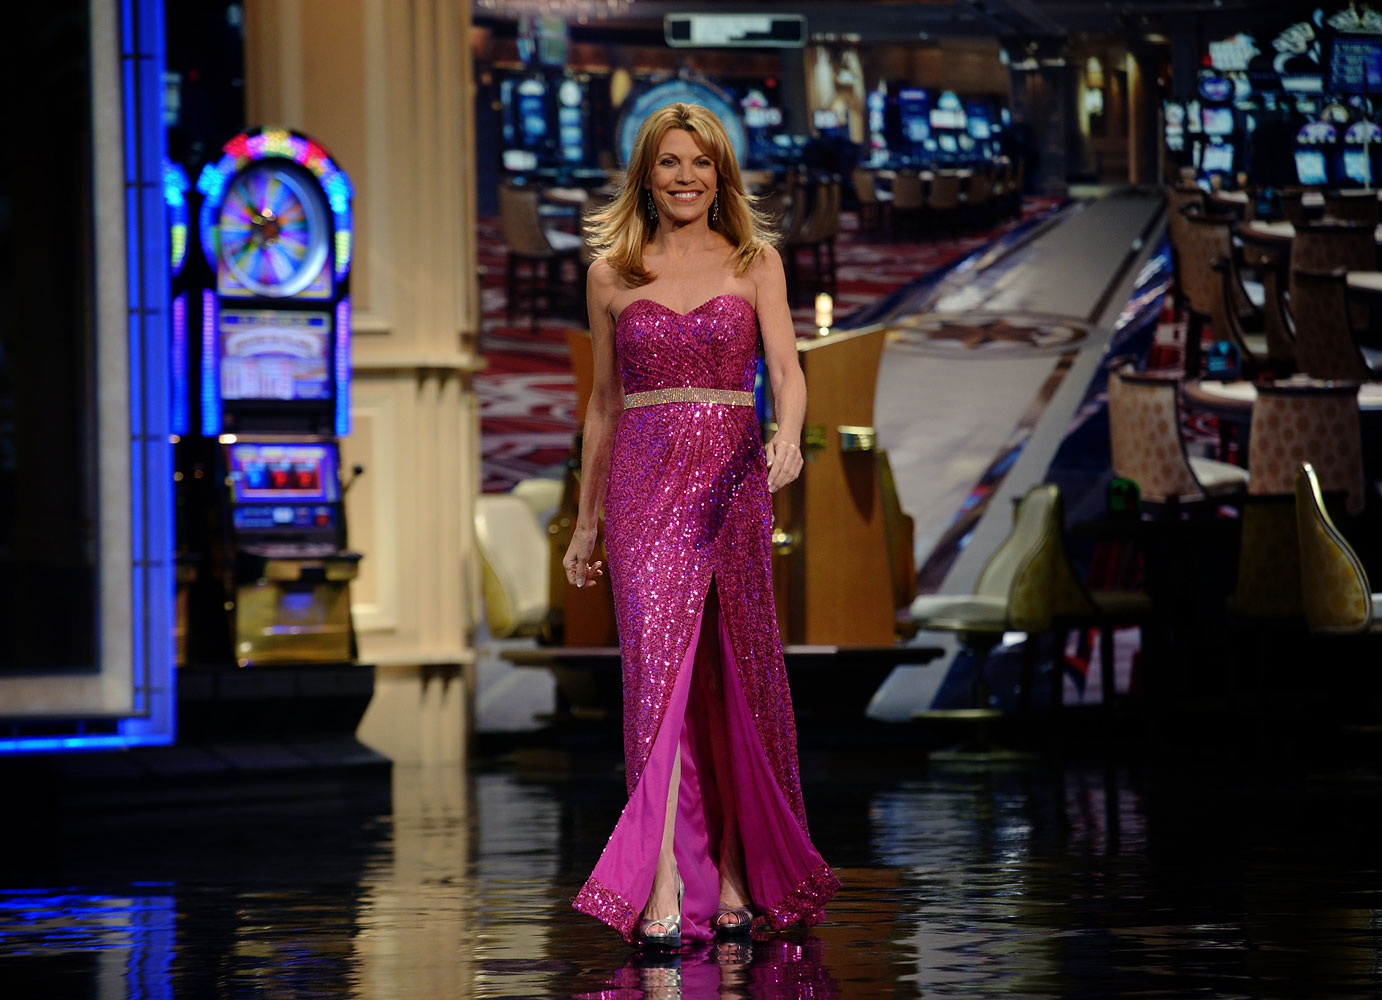 Vanna White, who has been turning letters on the Wheel of Fortune for 30 years, walks onstage for another taping on July, 30, 2013 in Las Vegas, NV.